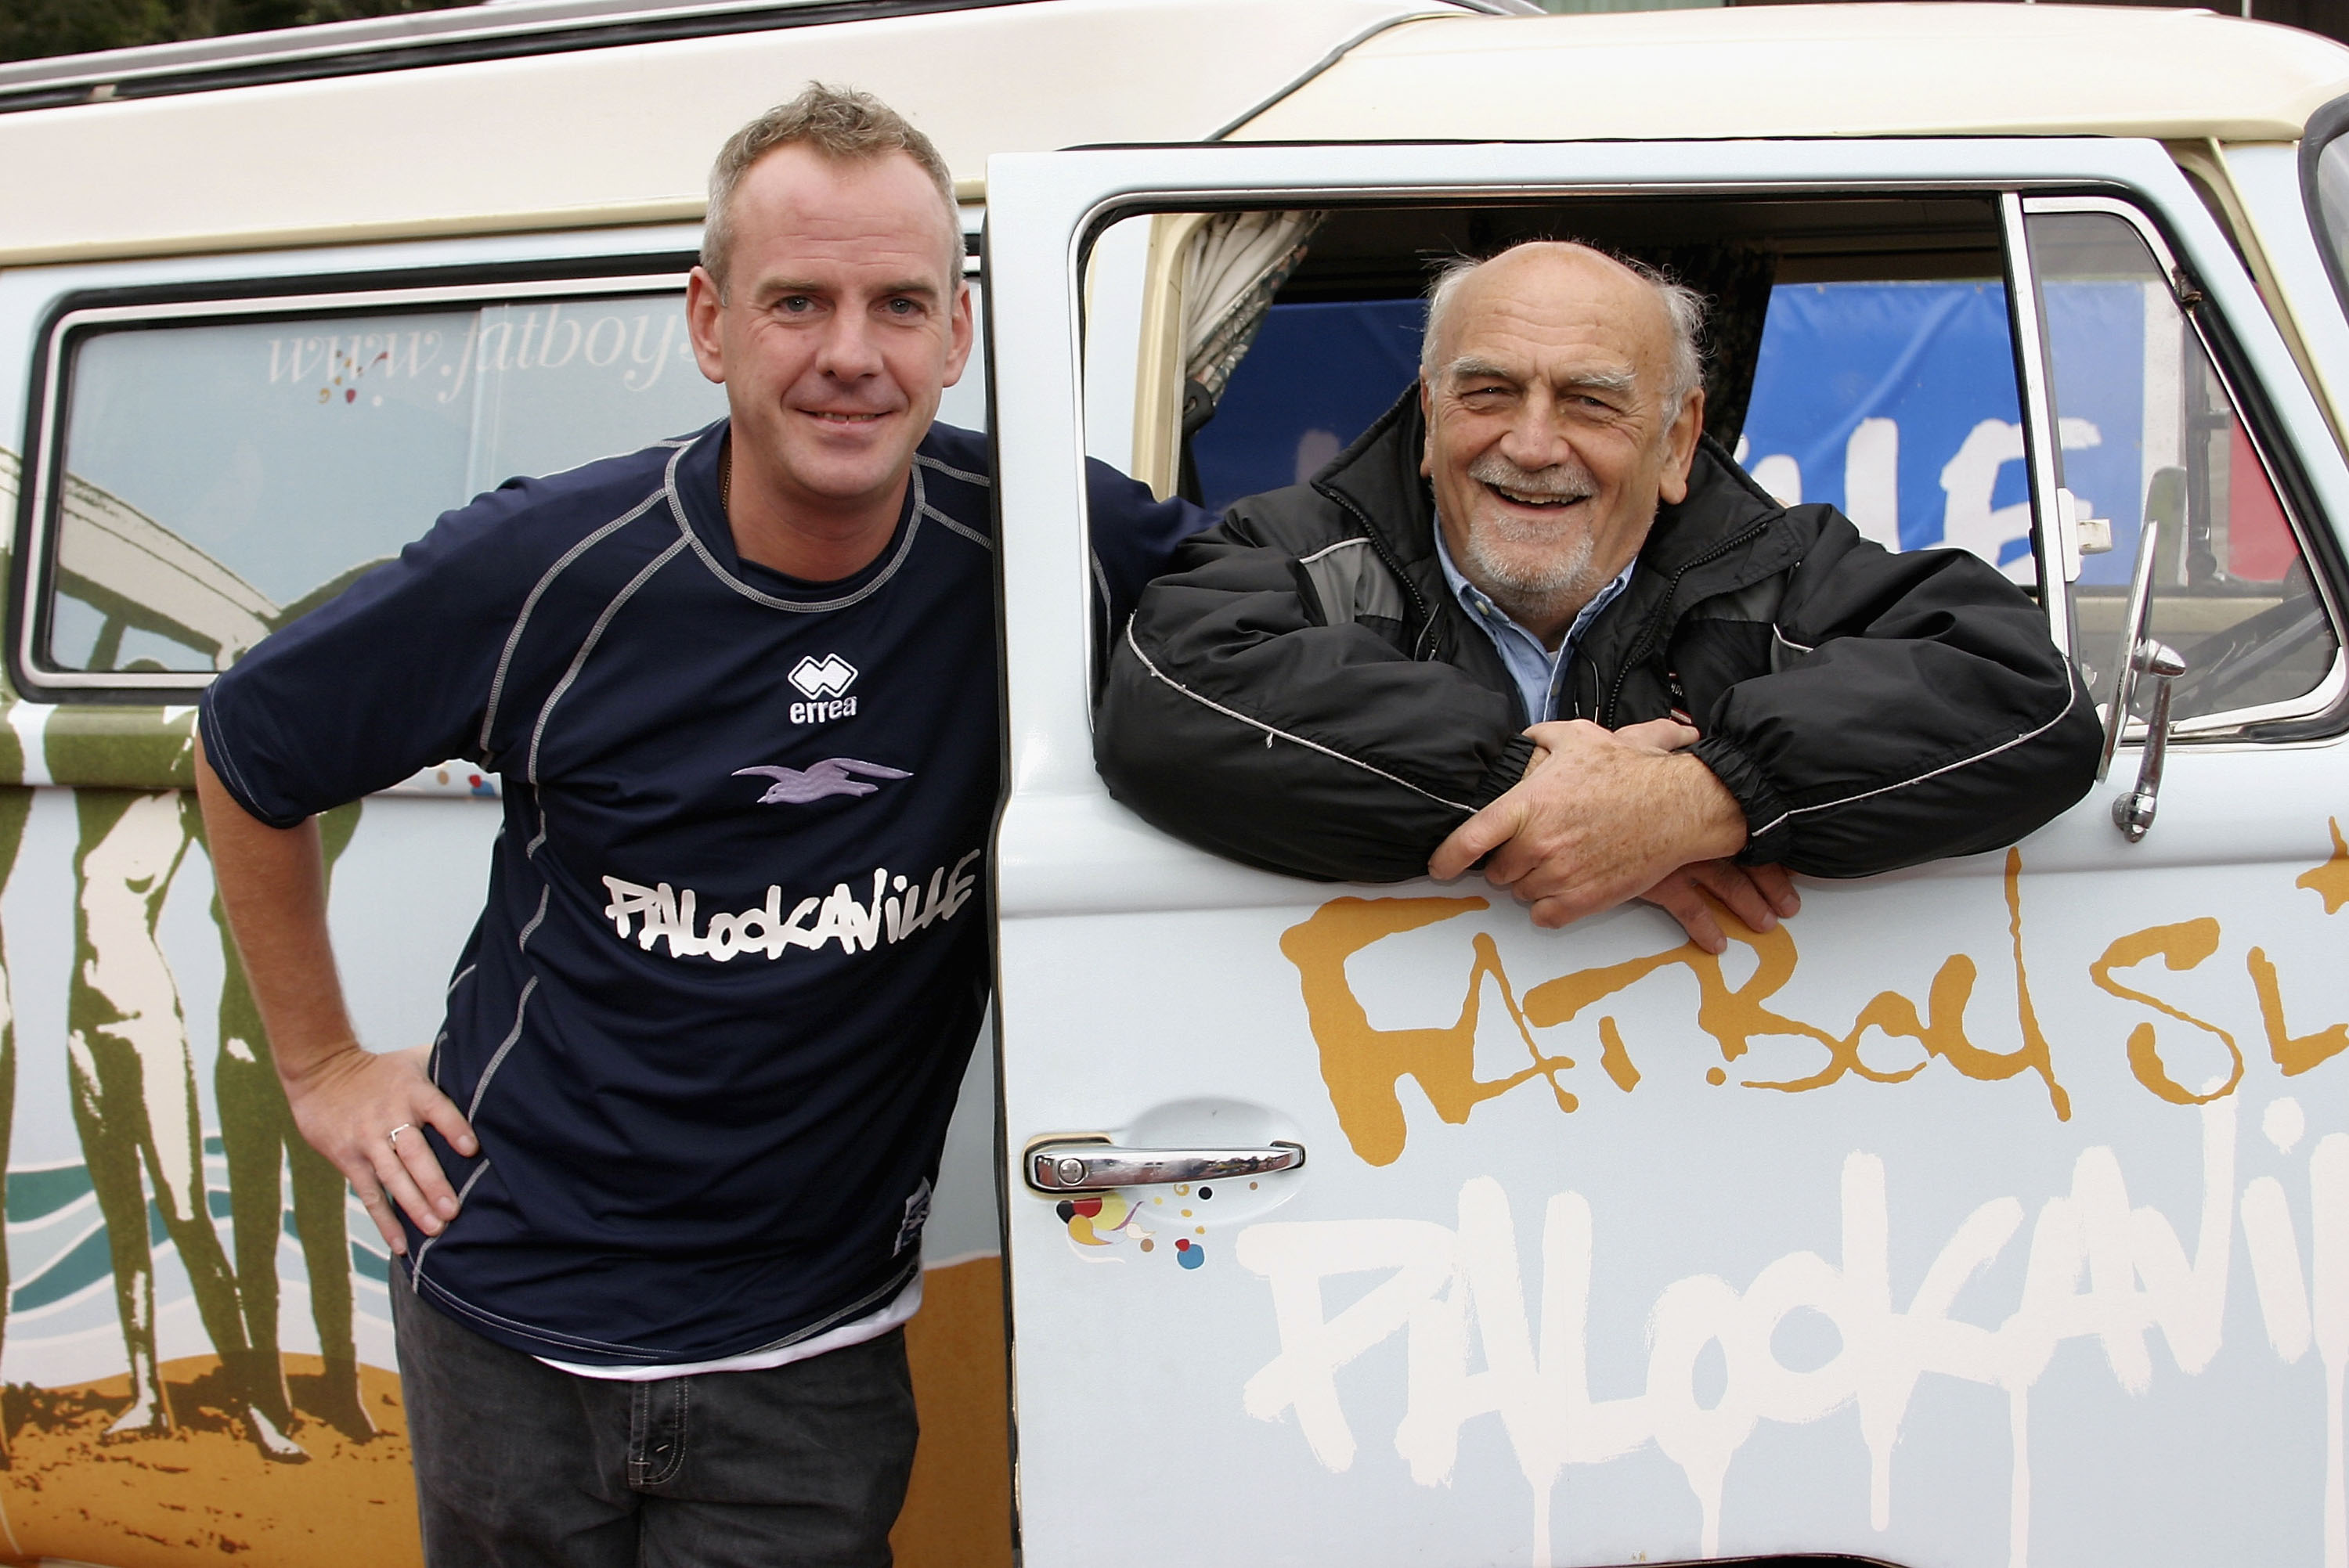 BRIGHTON, ENGLAND - OCTOBER 2: DJ and Brighton and Hove Albion fan Fatboy Slim poses with Brighton Chairman Dick Knight as he launches his new album 'Palookaville' at Withdean Stadium in Brighton on October 2, 2004 in Brighton, England. Fatboy Slim has changed the name of the Withdean Stadium to 'Palookaville' for the match against Sheffield United. (Photo by Dave Etheridge-Barnes/Getty Images)